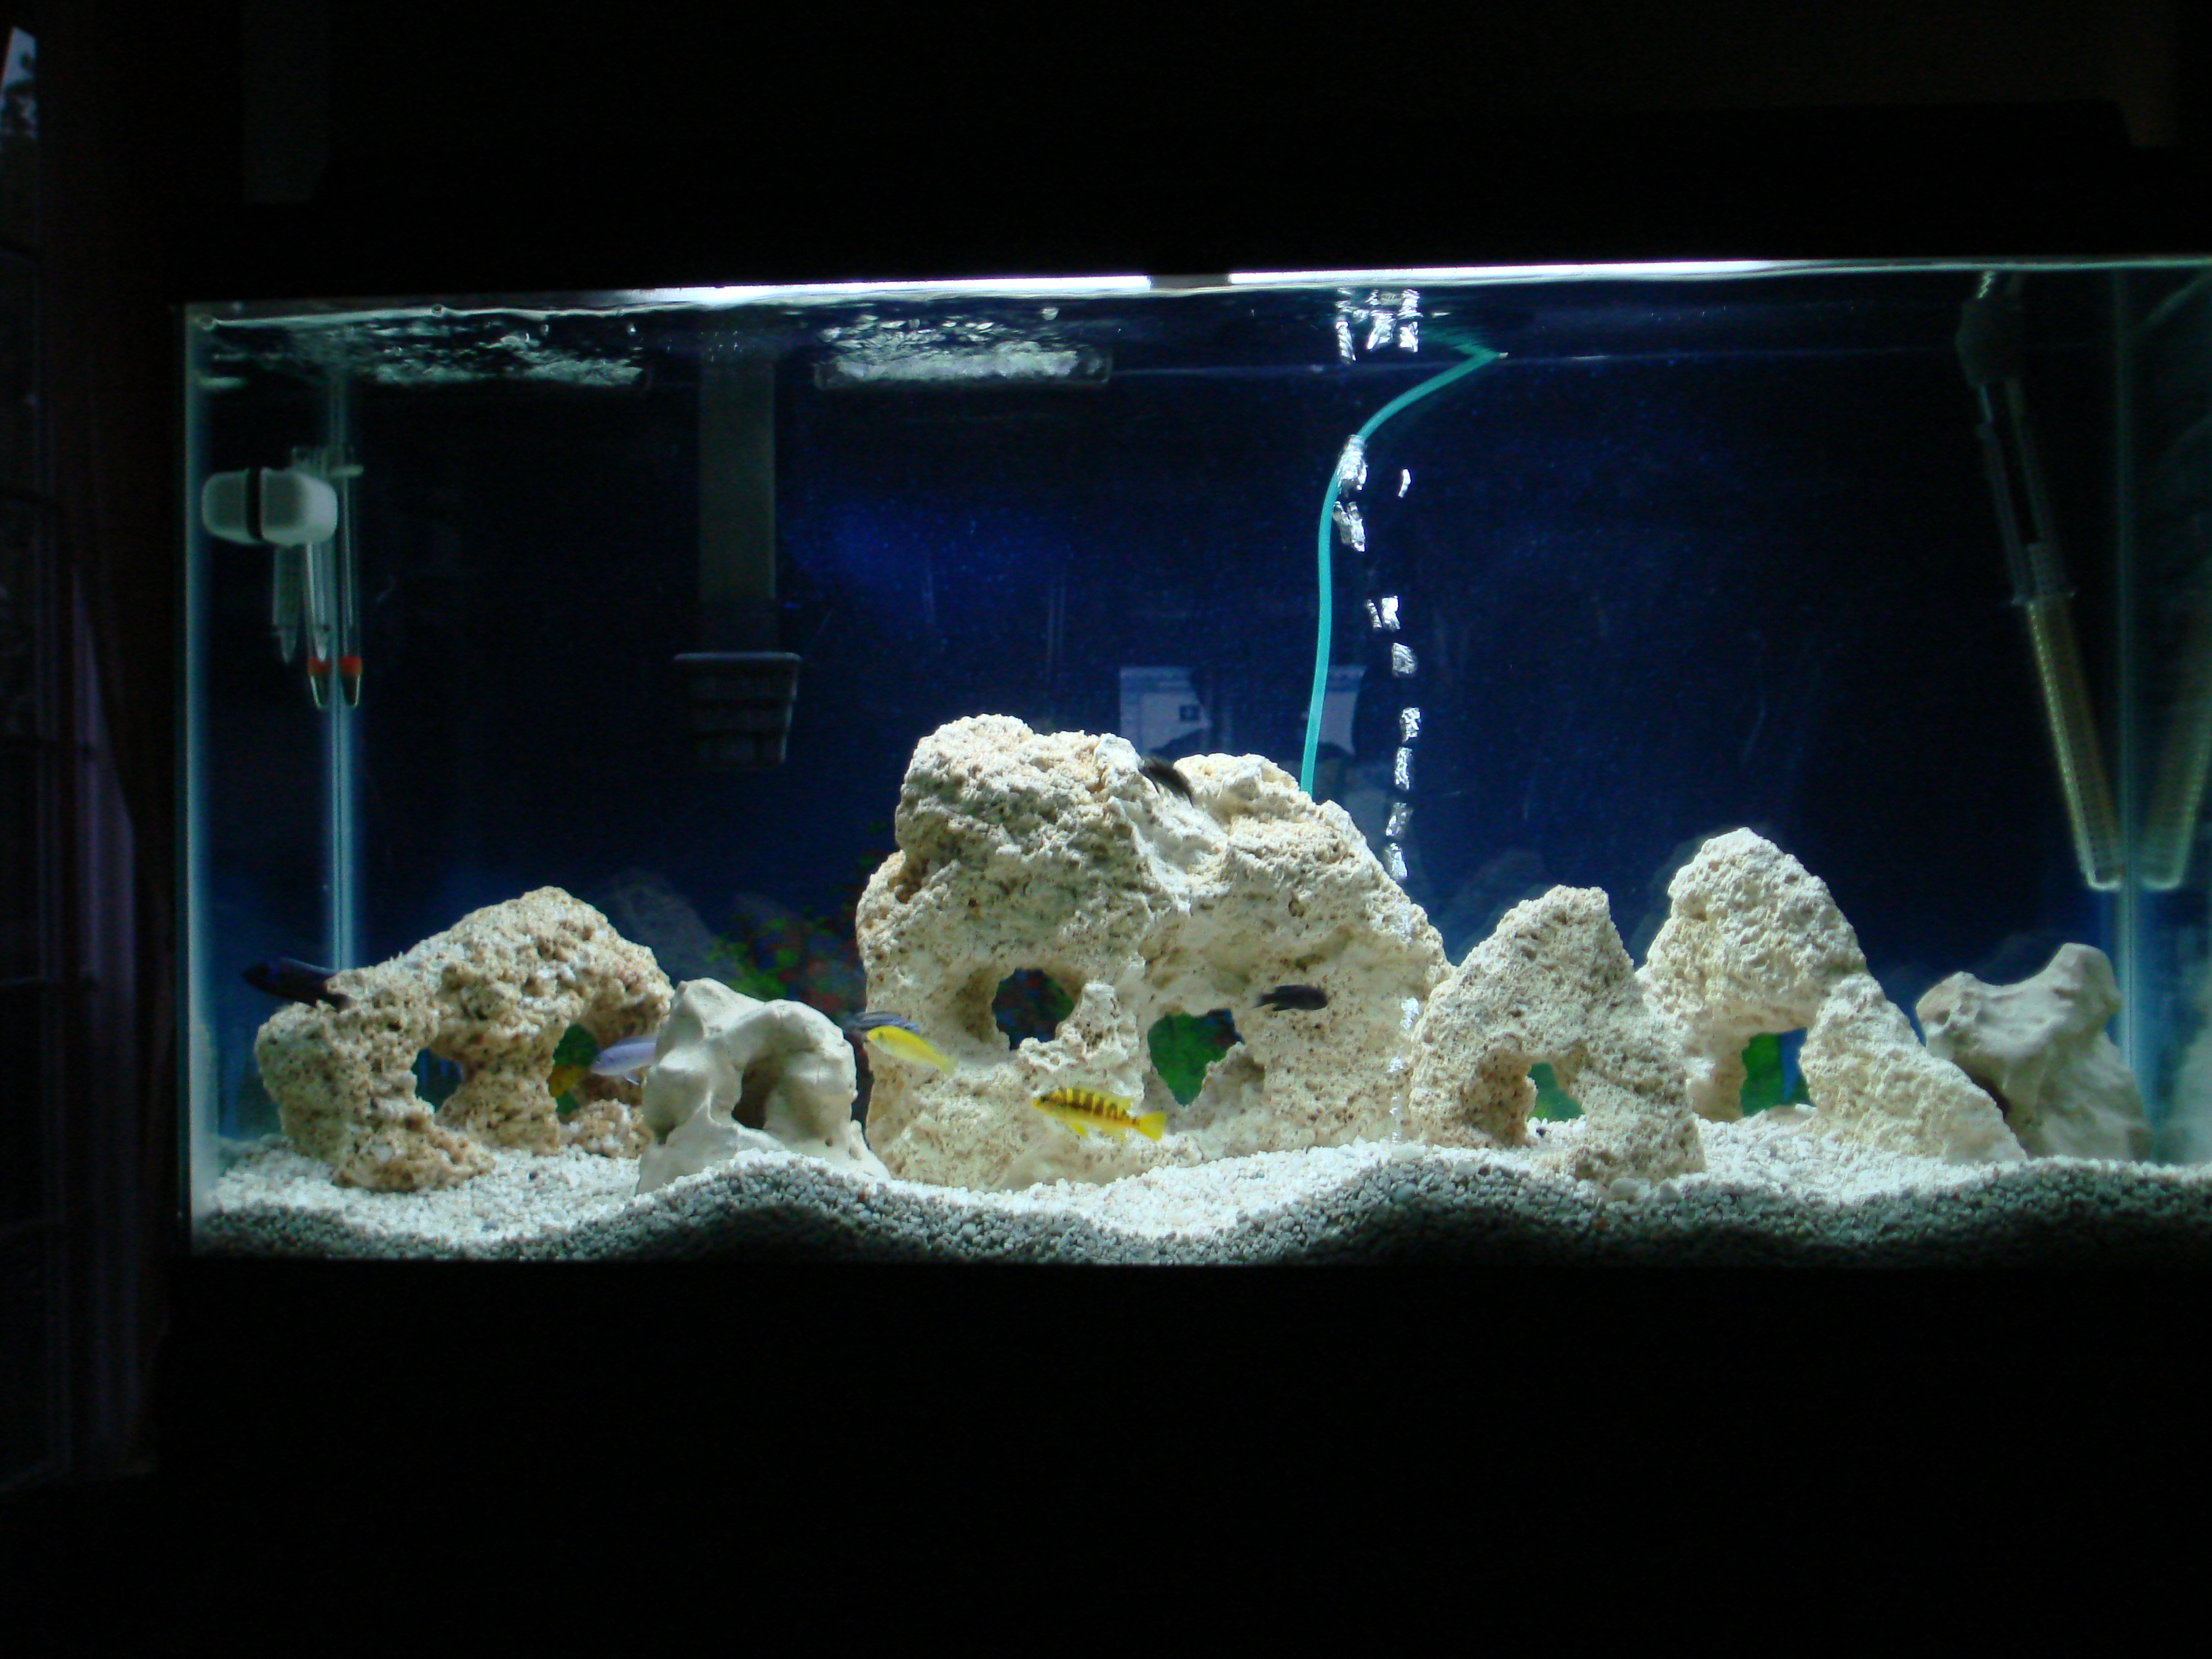 New backround for 38 gallon fish tank